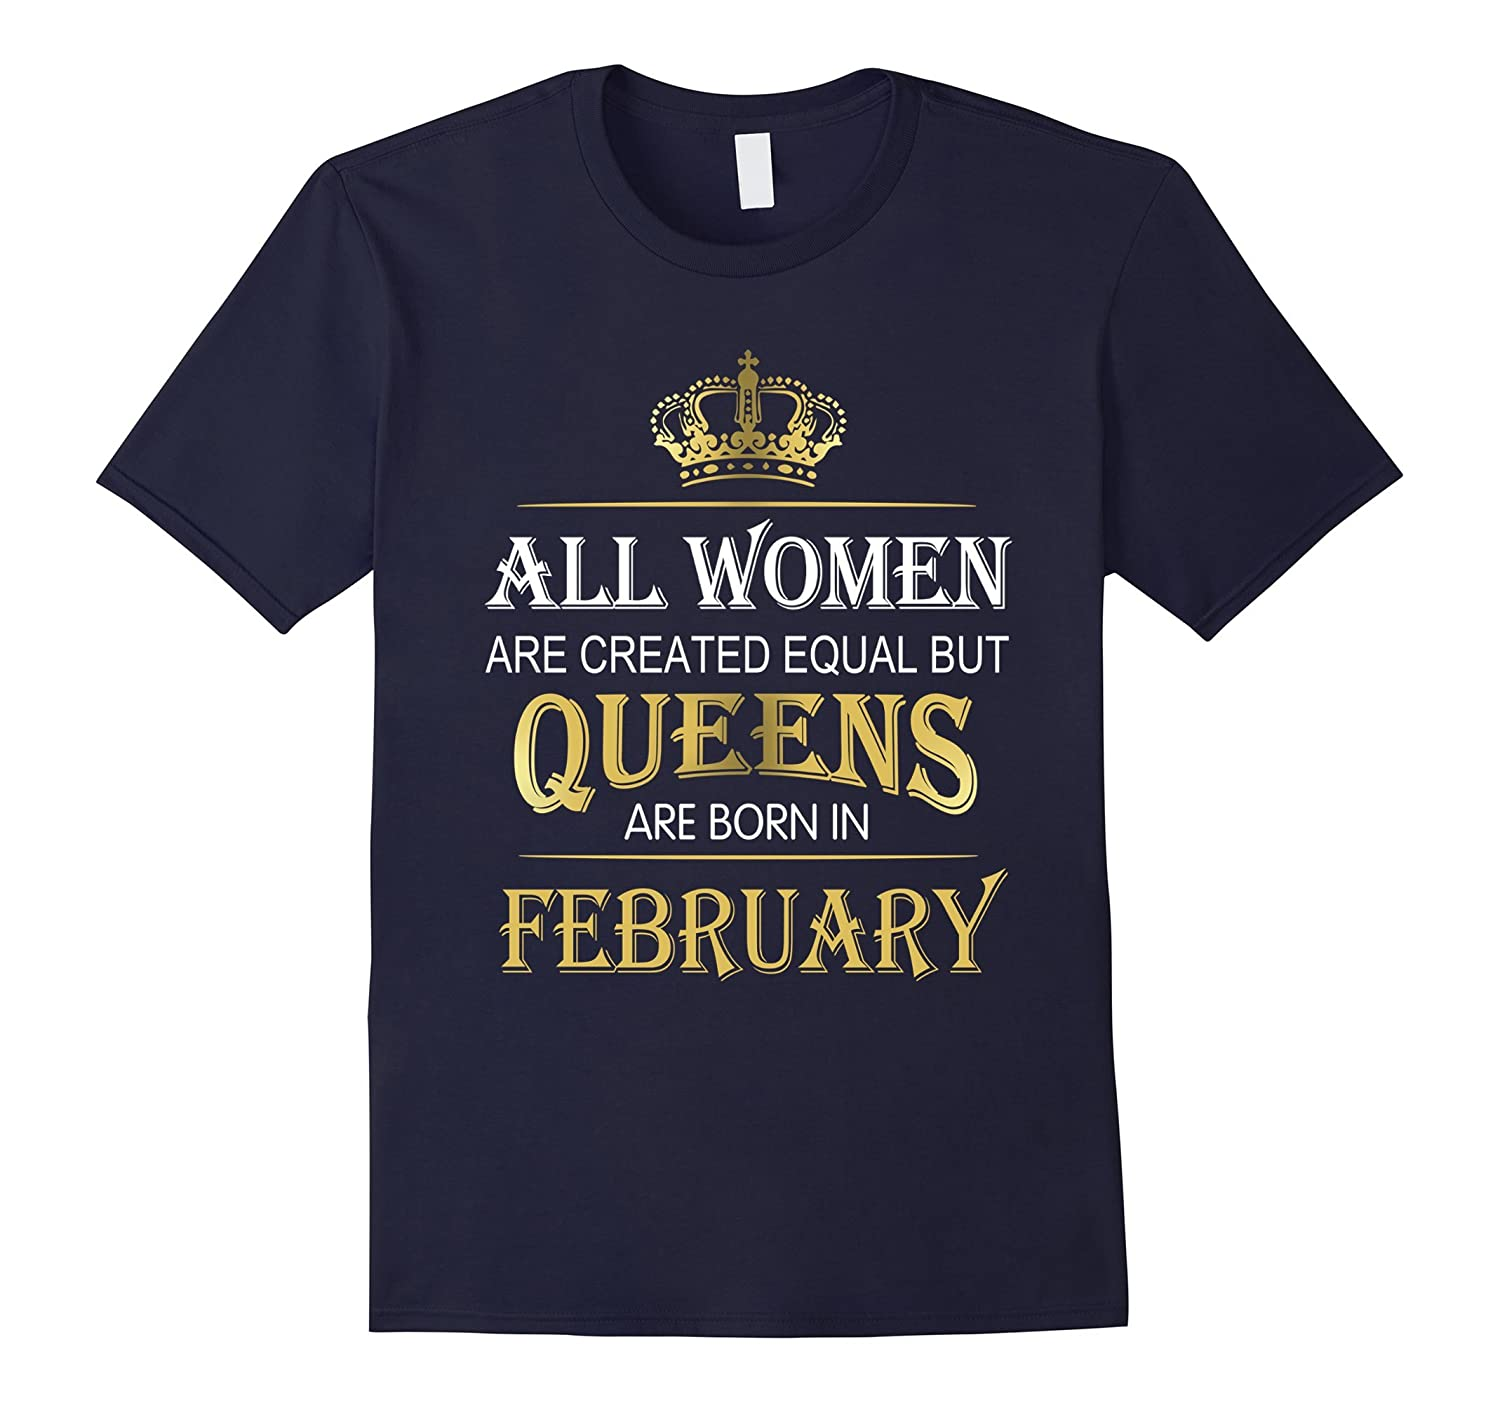 All Women Are Created Equal But Queens Are Born In February-ah my shirt one gift